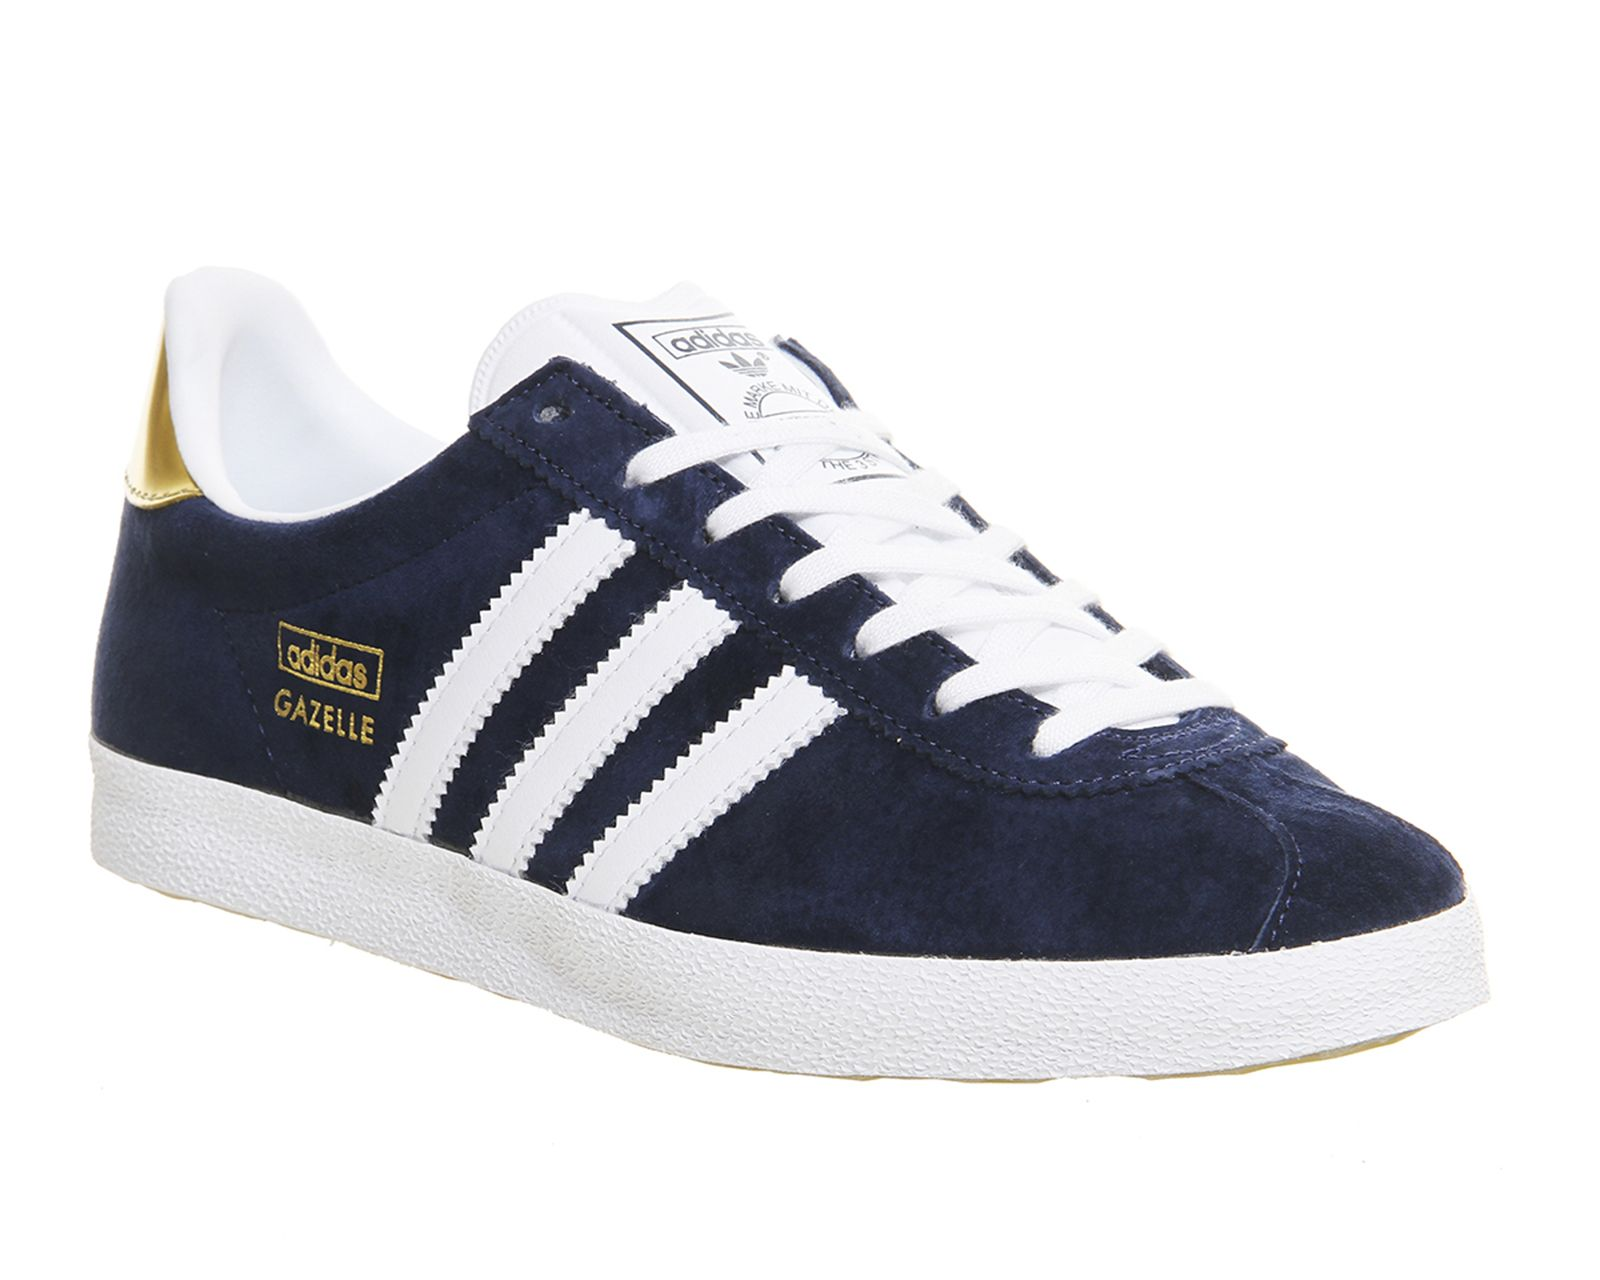 Adidas Gazelle Og Trainers Night Indigo White Metallic Gold - Hers trainers